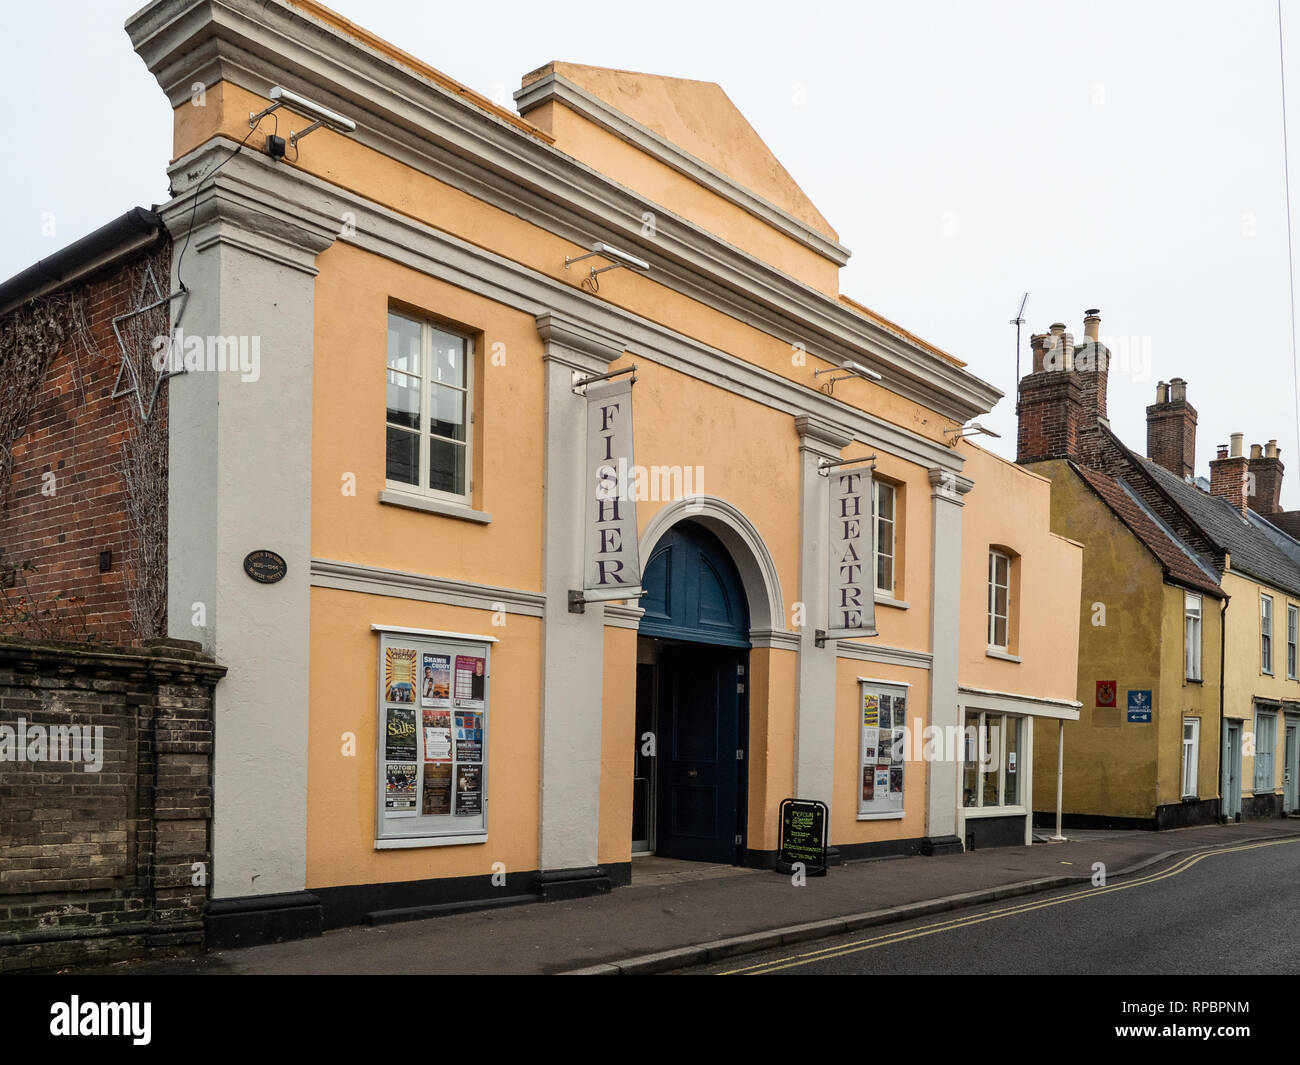 A view of the front of the Fisher Theatre in Bungay, Suffolk - Stock Image